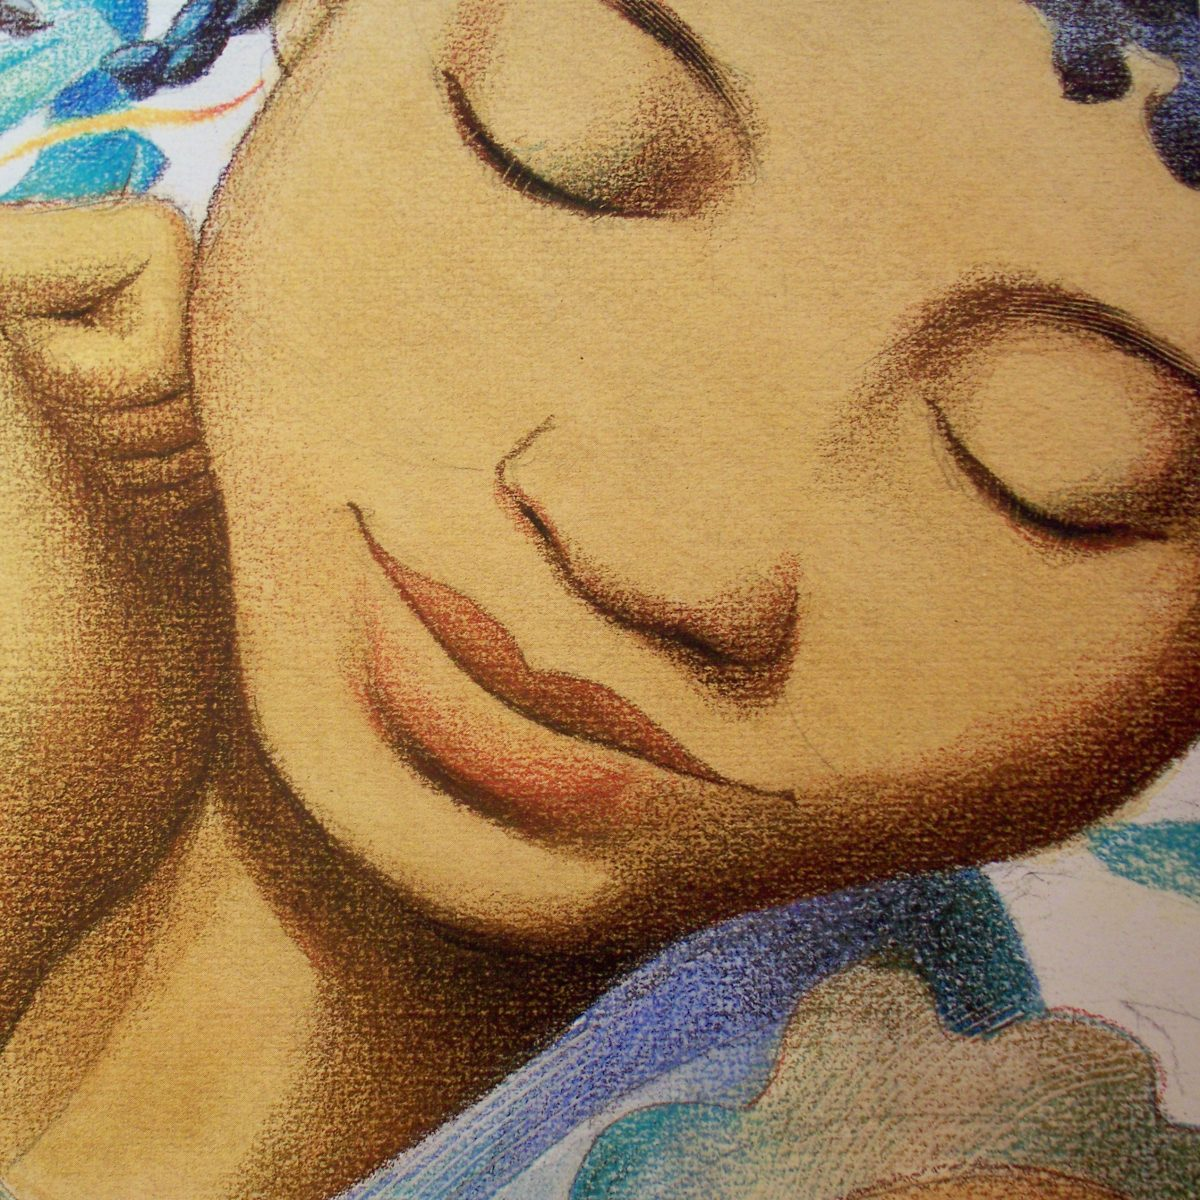 Leontyne Price Voice of A Century by Carole Boston Weatherford inside image